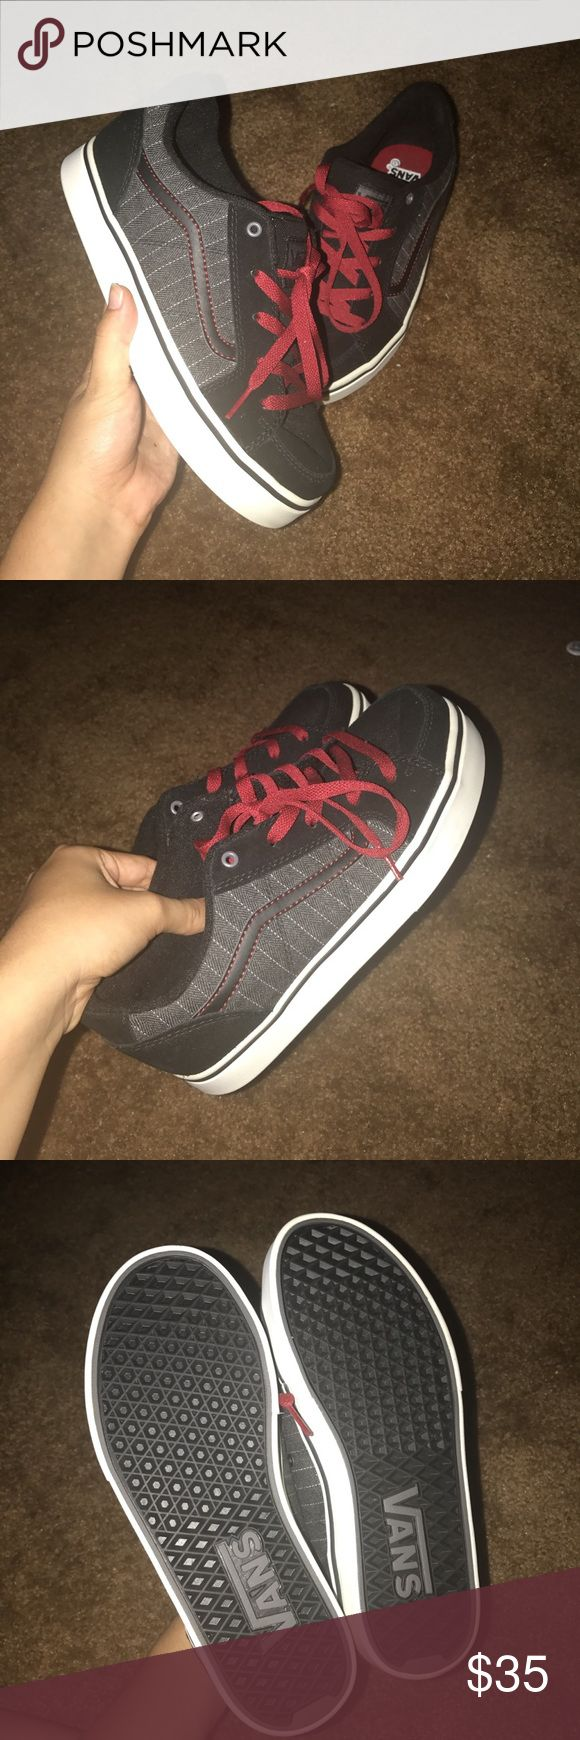 Vans skate original Never worn before Vans Shoes Sneakers